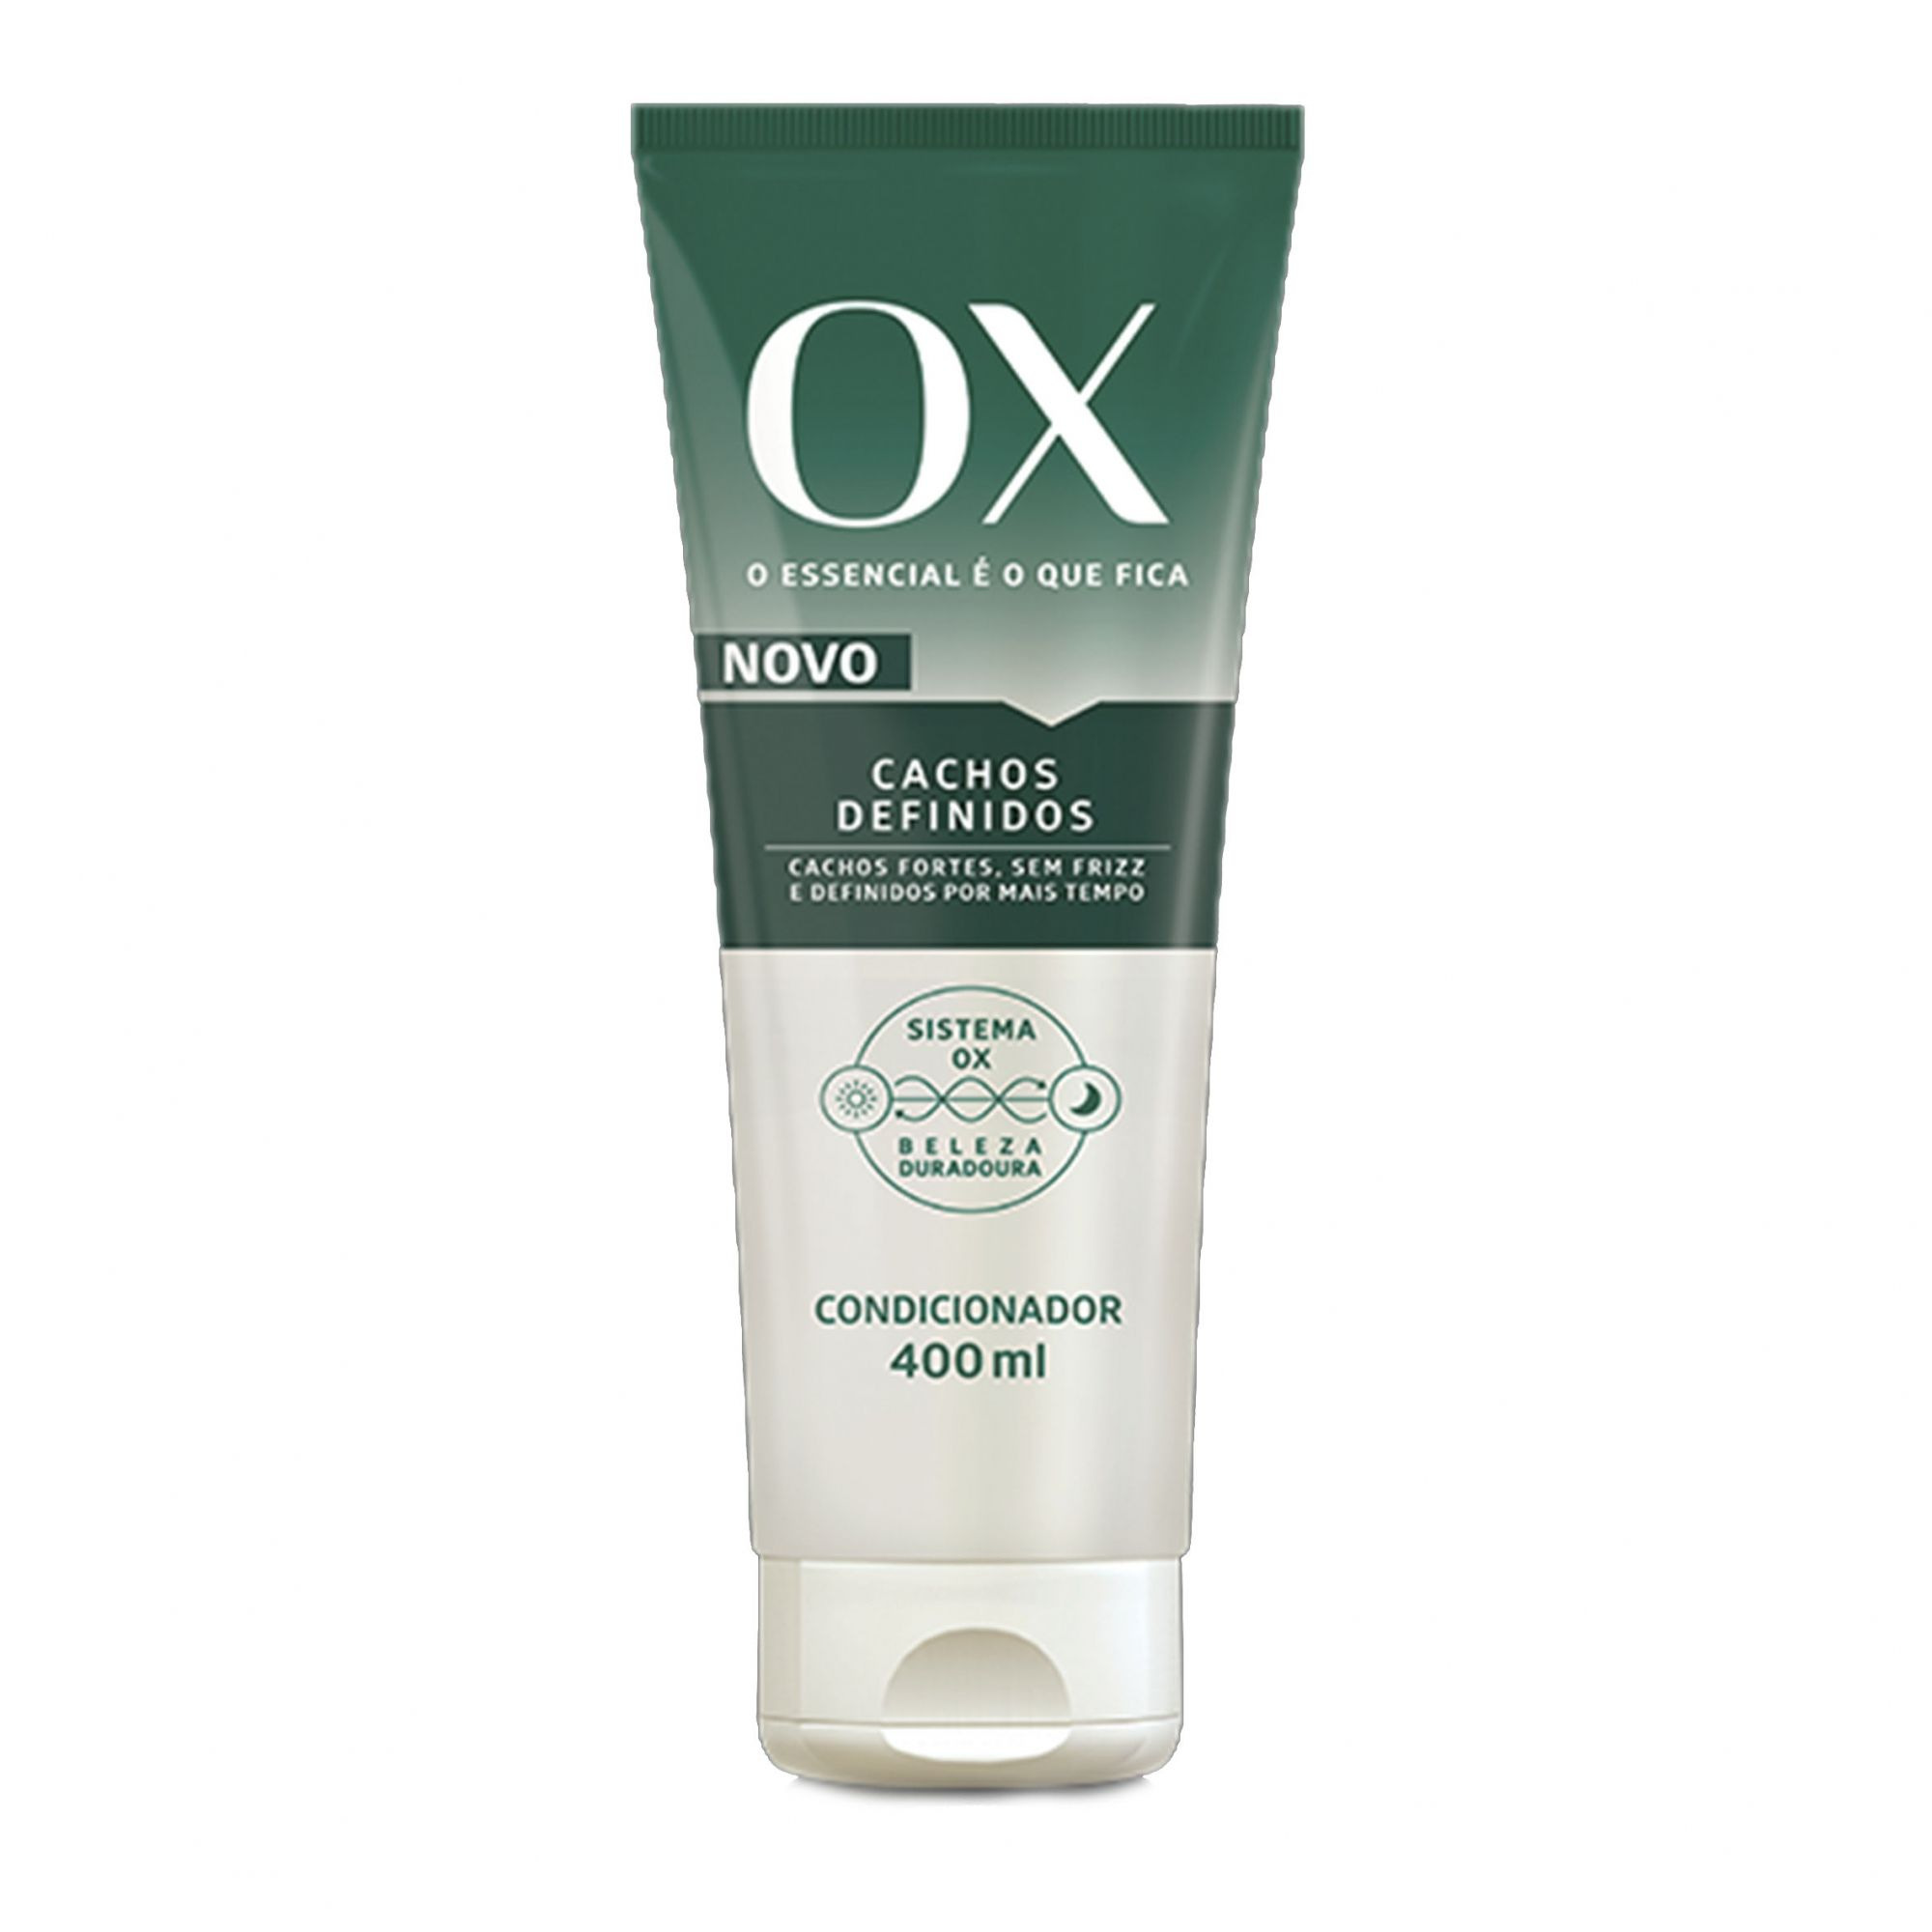 Condicionador Ox Plants Cachos Definidos 200ml.